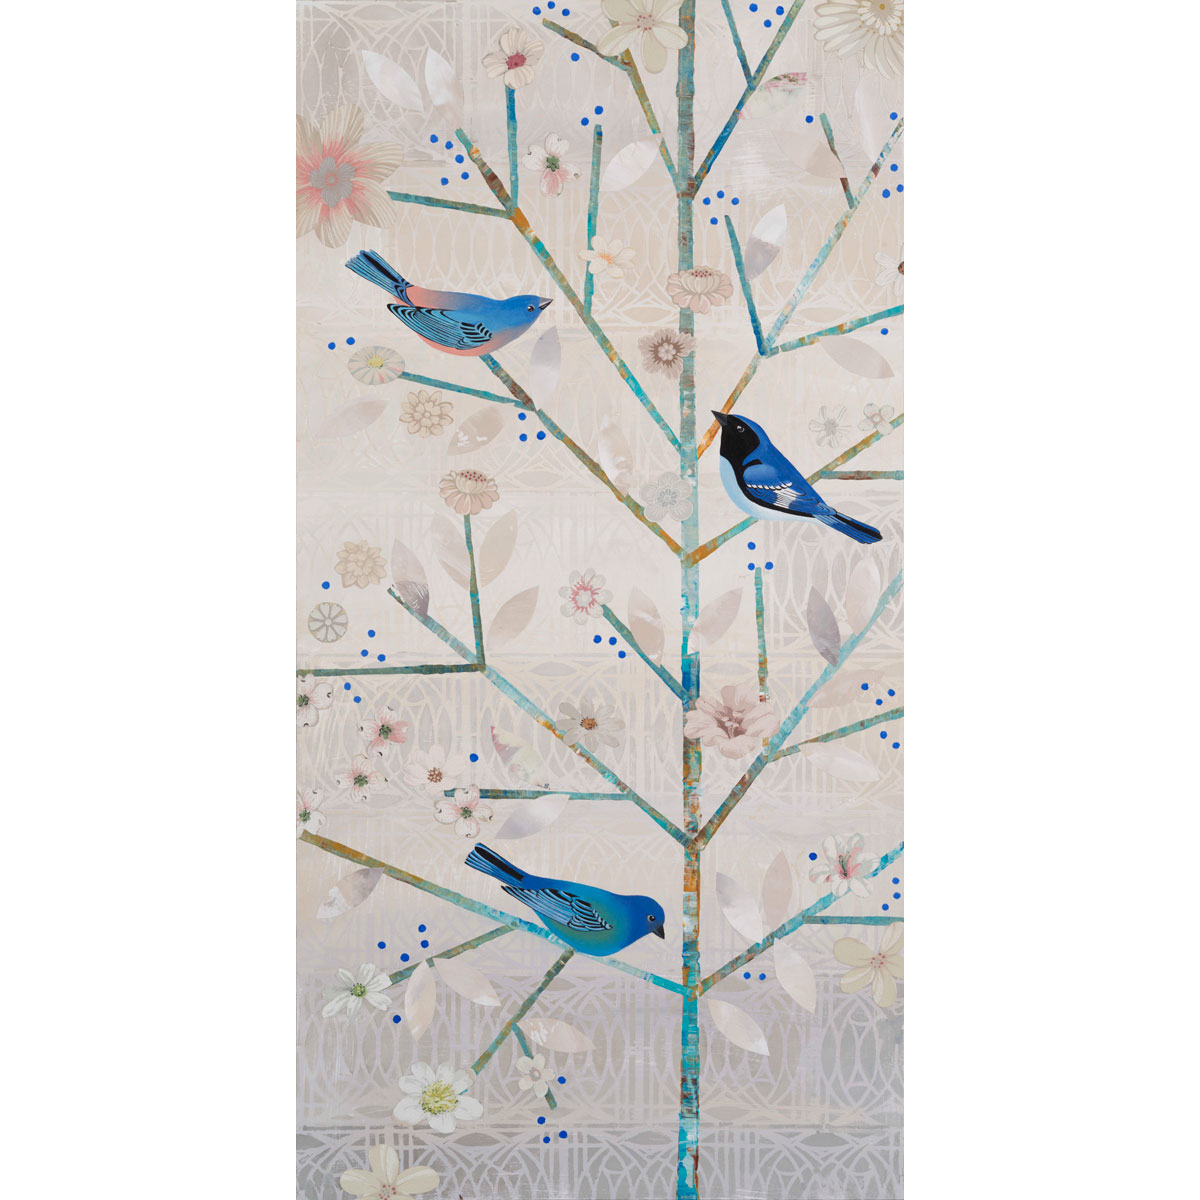 White Tree Blue Bird by Diana Stetson